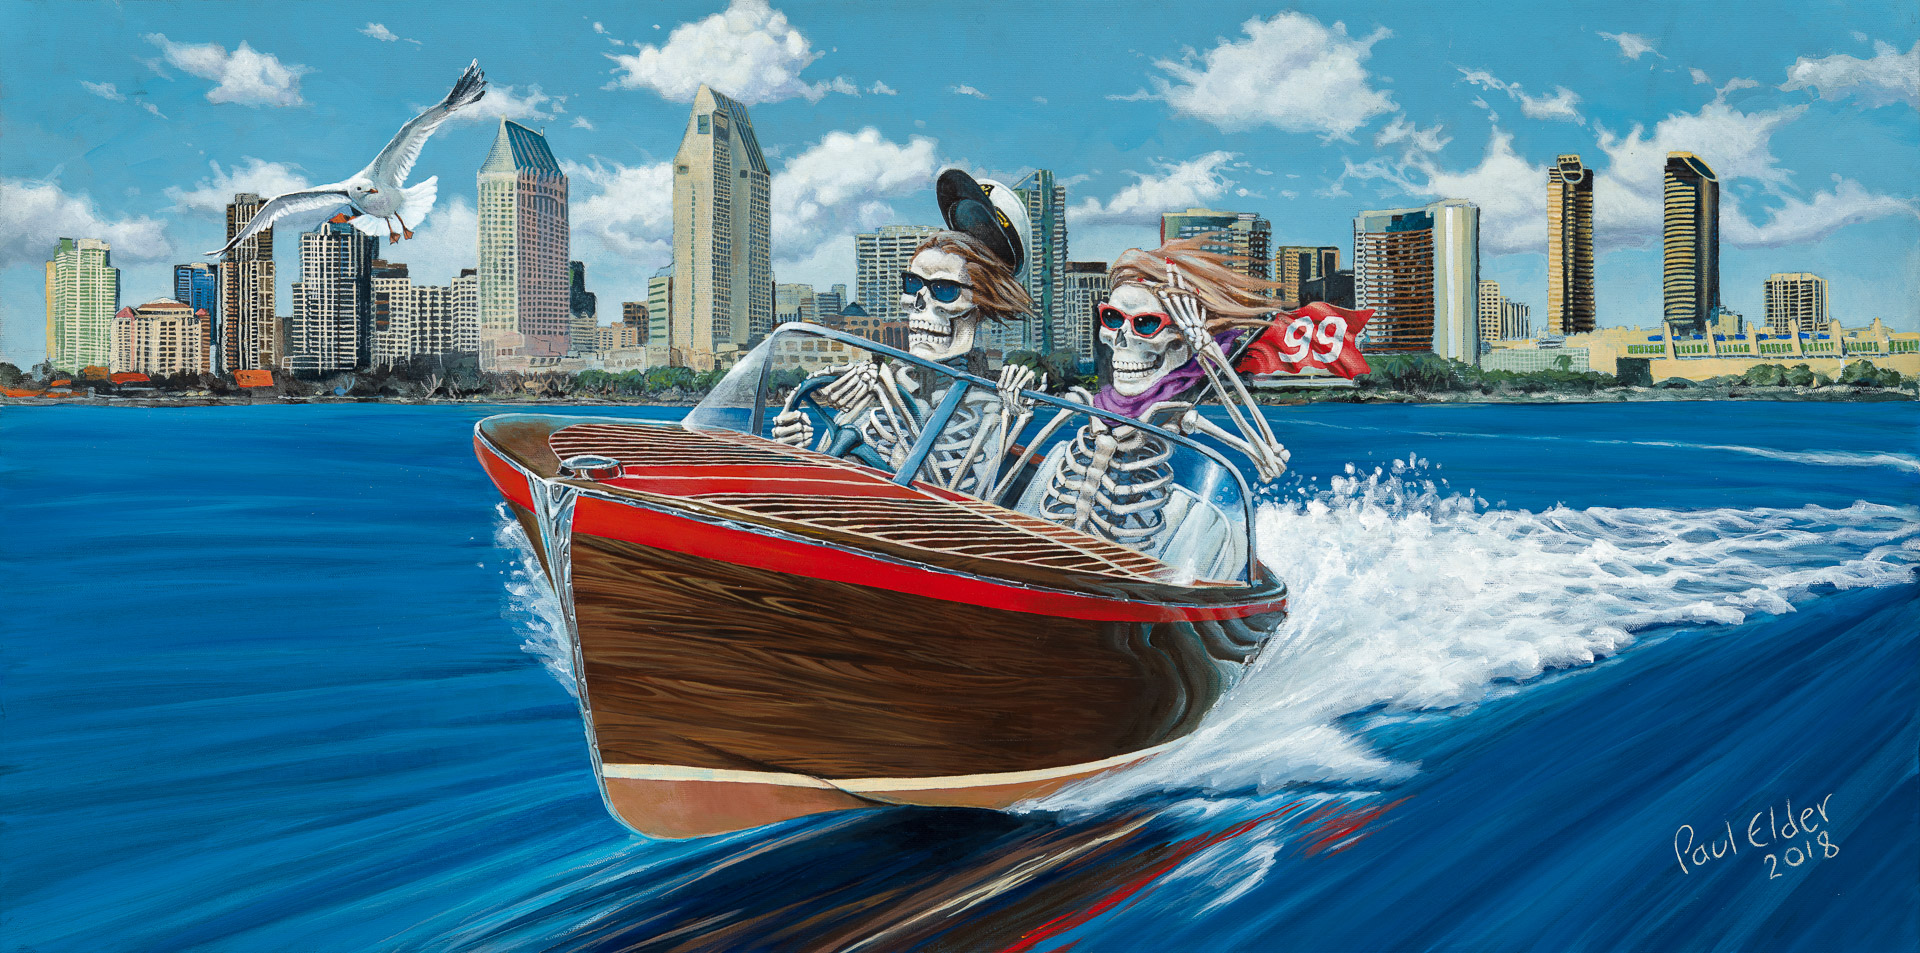 Art Print - Speed Boat LARGE